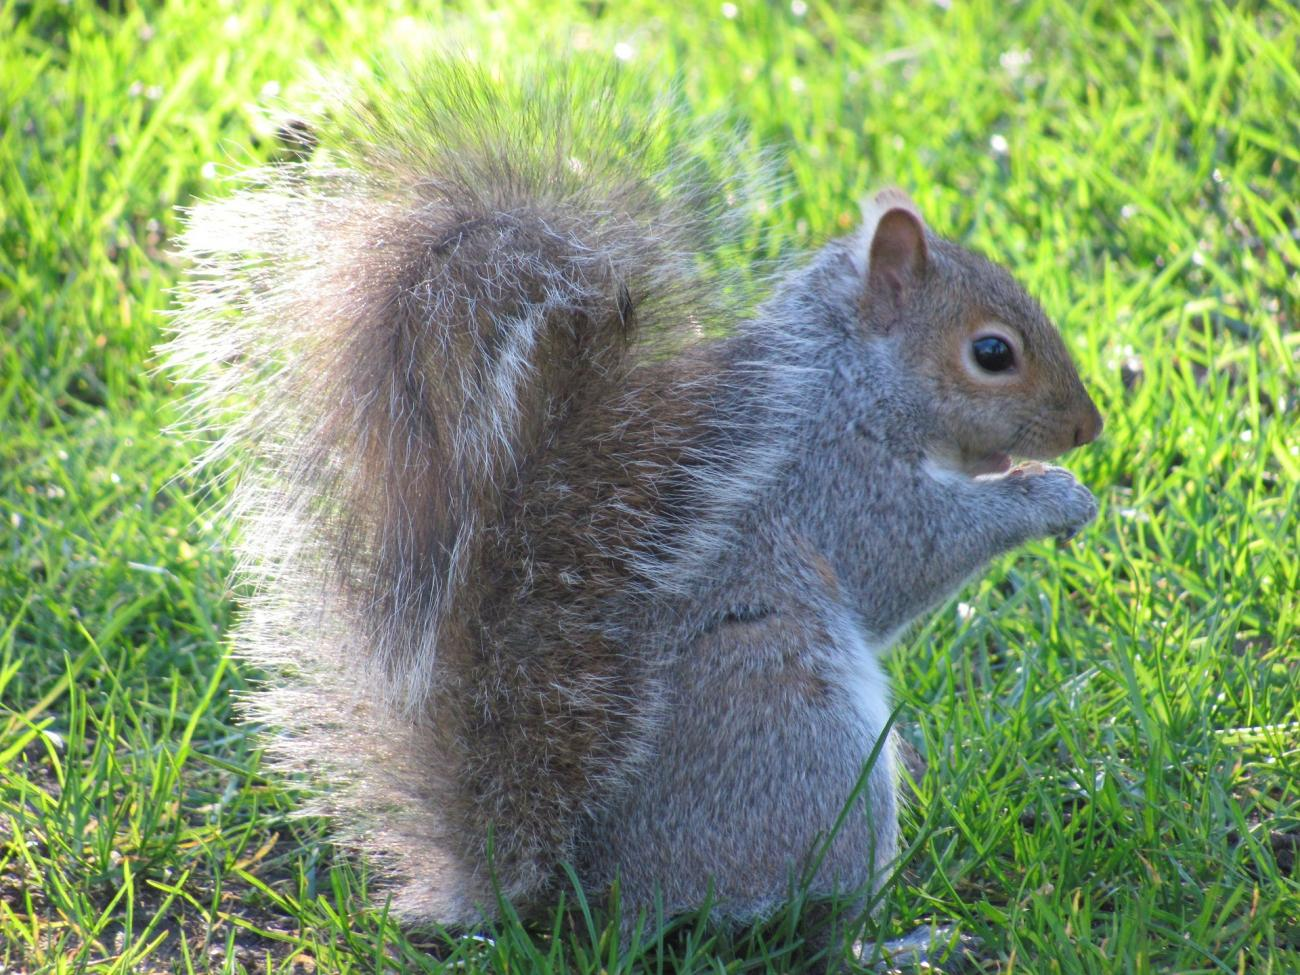 Squirrels-how to identify-squirrel-Pixabay